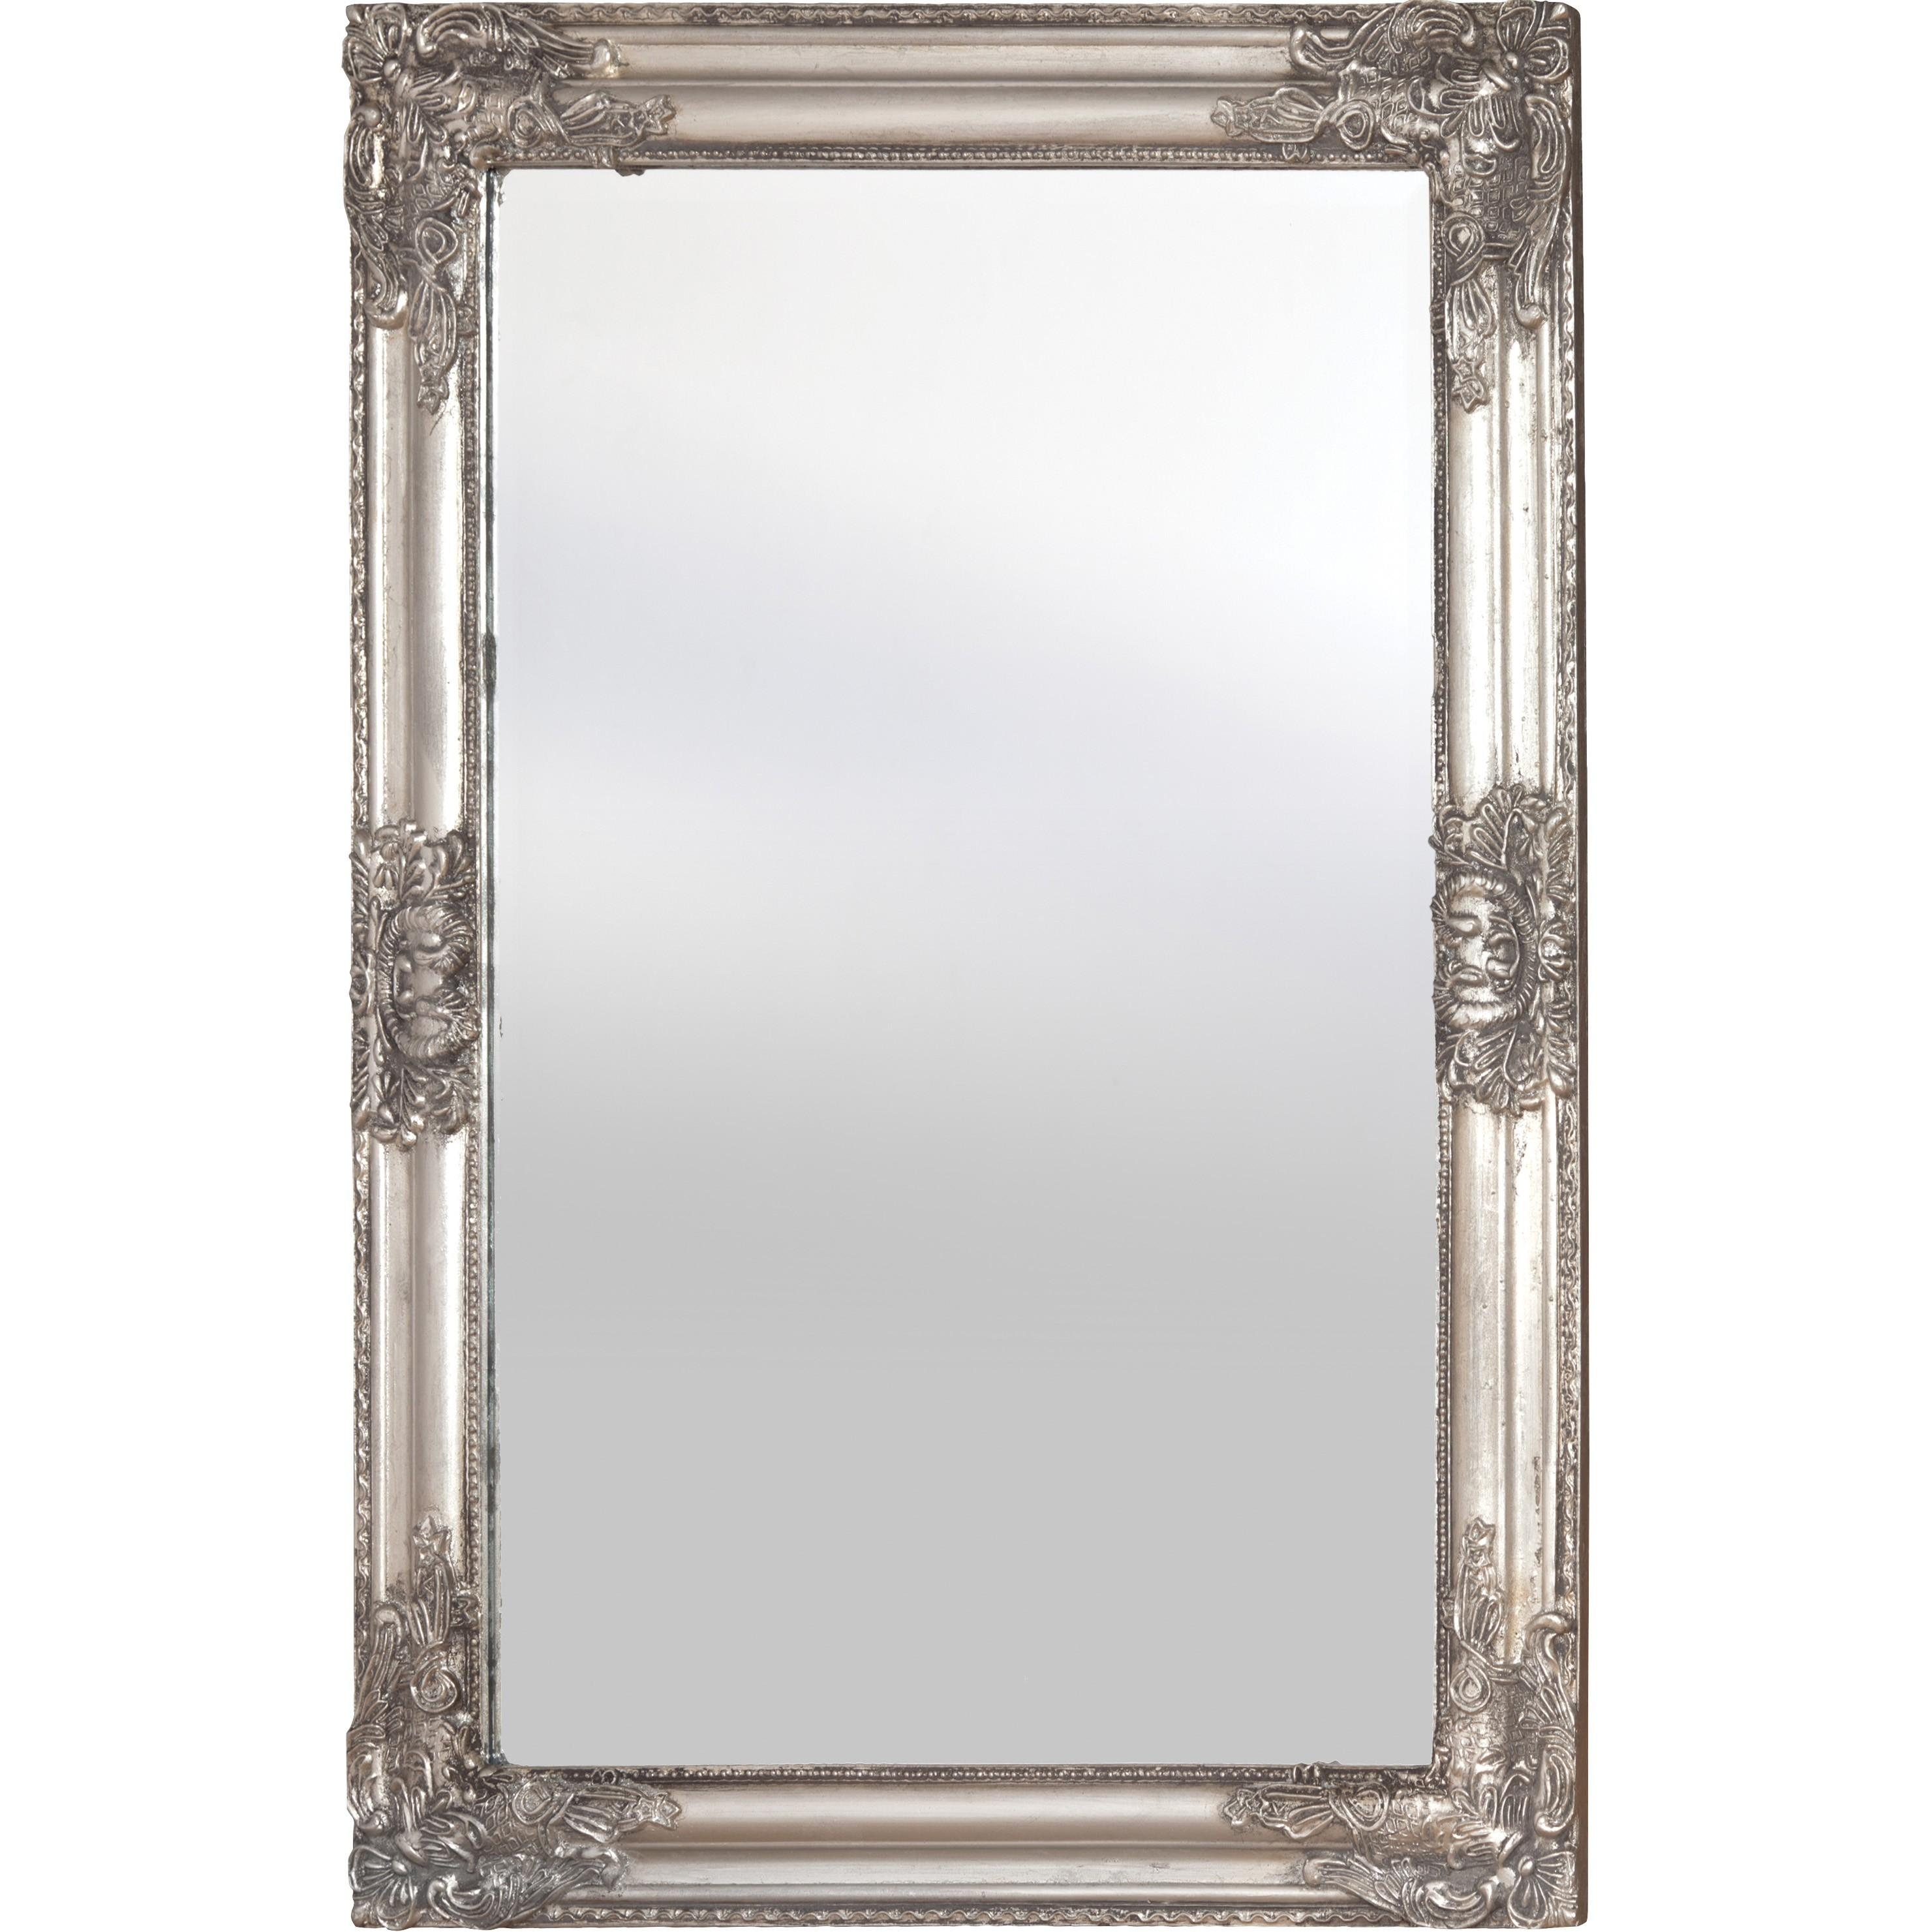 Antique Wooden Framed Mirror (Silver) Throughout Antique Silver Mirror (View 7 of 20)